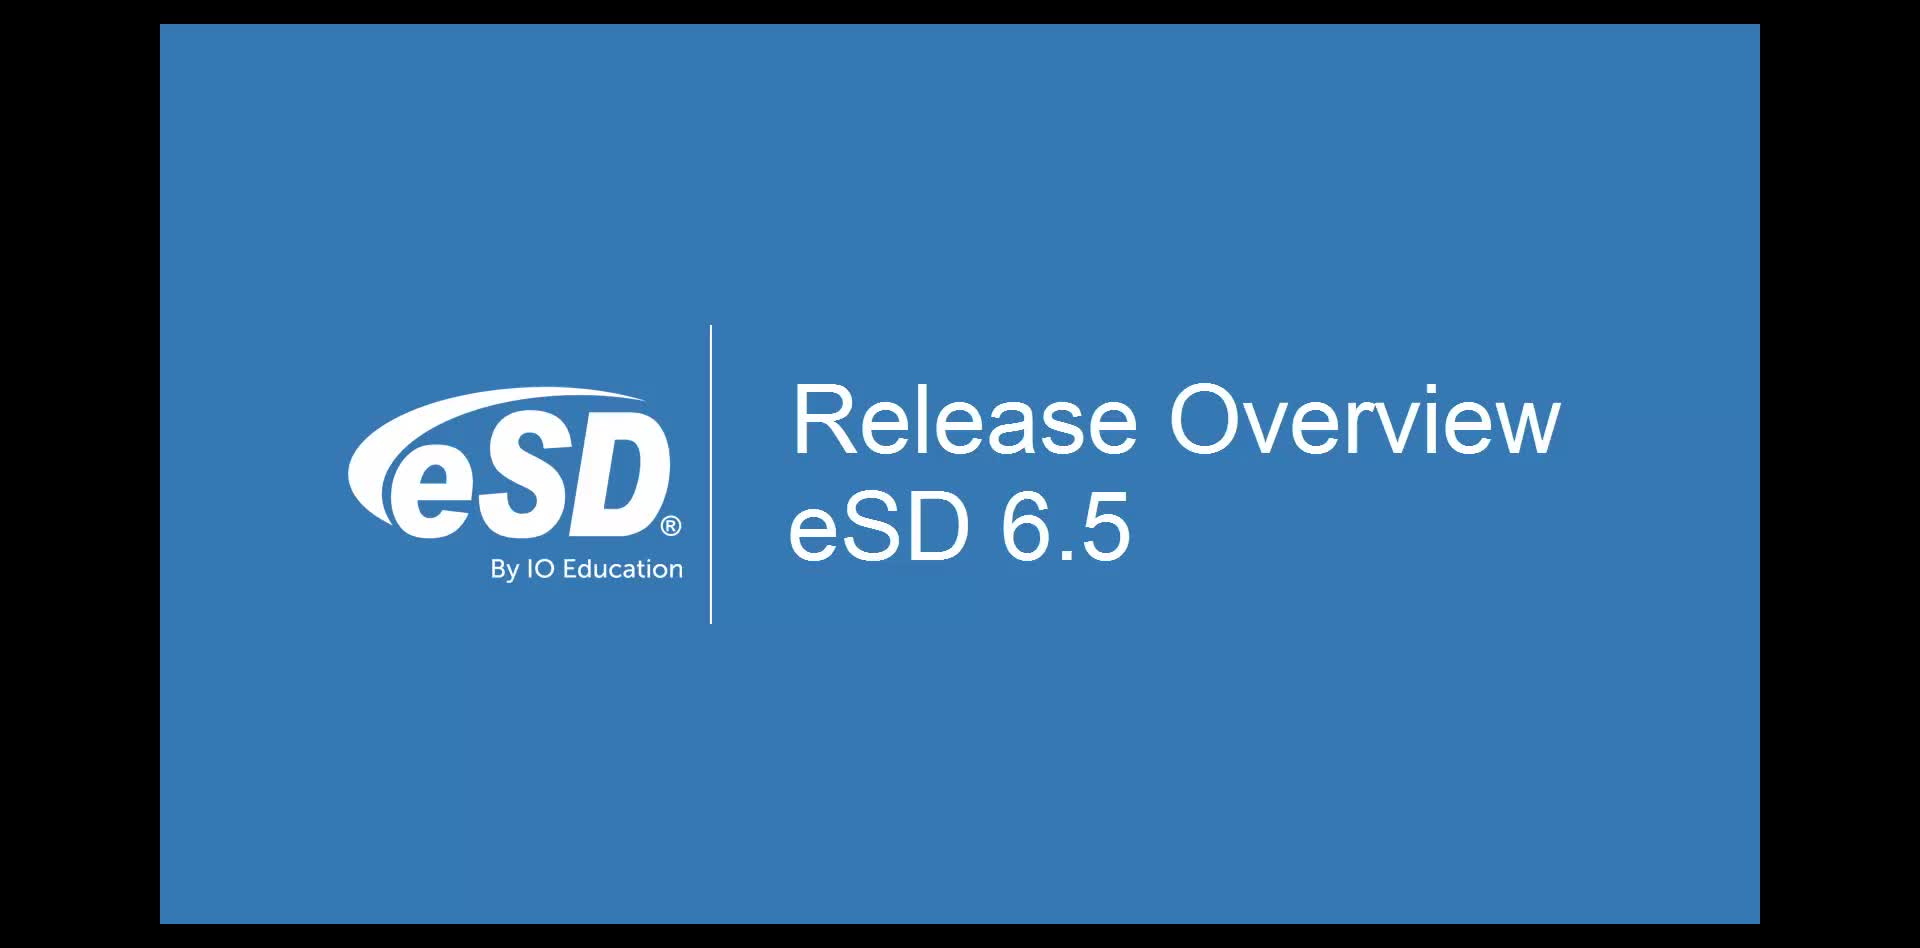 eSD 6.5 Release Overview